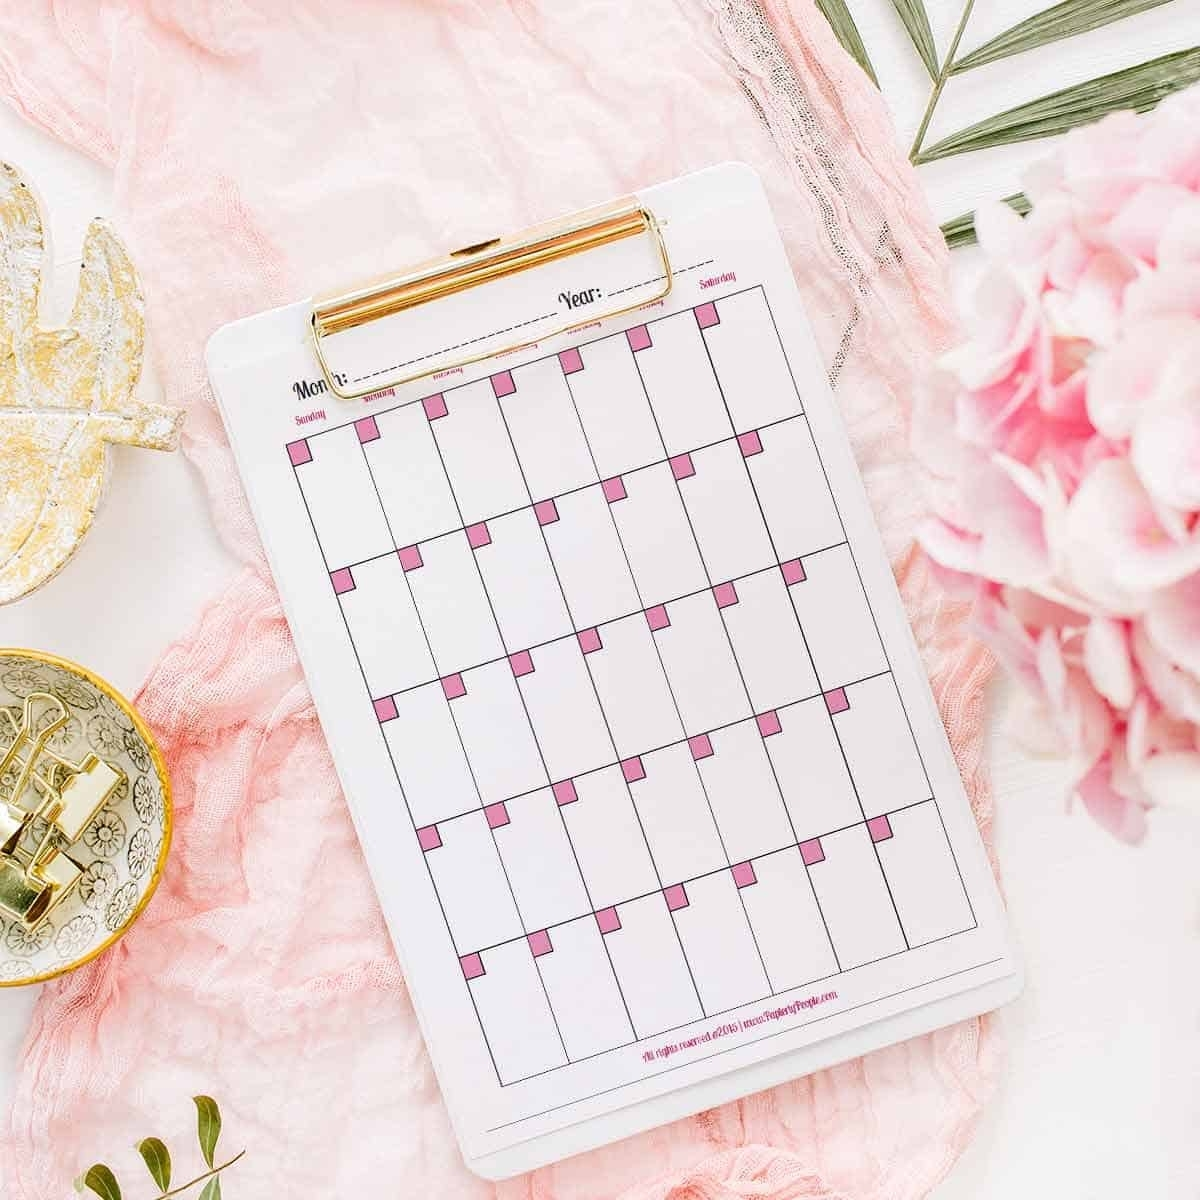 Printable Planner Calendar System For Staples Arc System Or